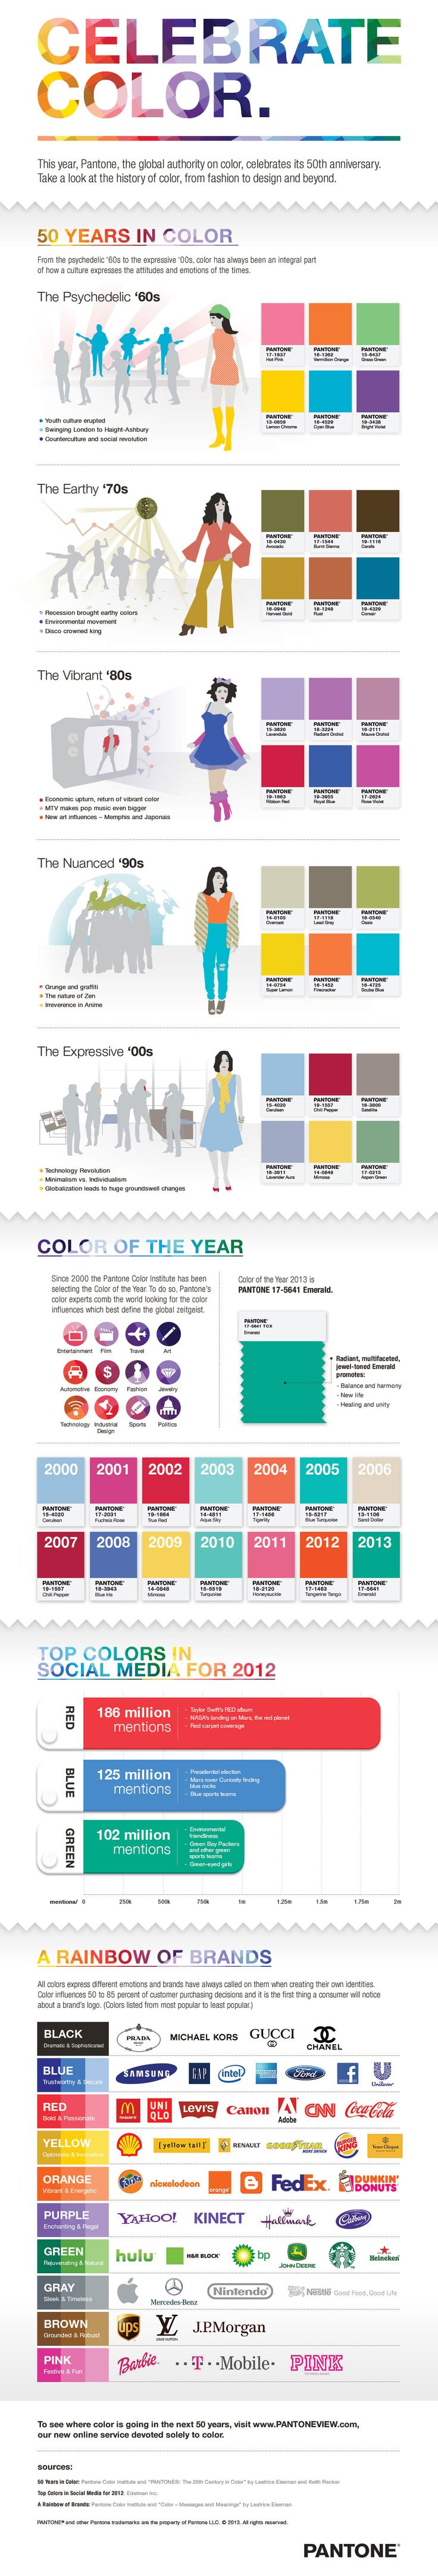 Celebrate Color: Color by Decade Infographic from Pantone.com